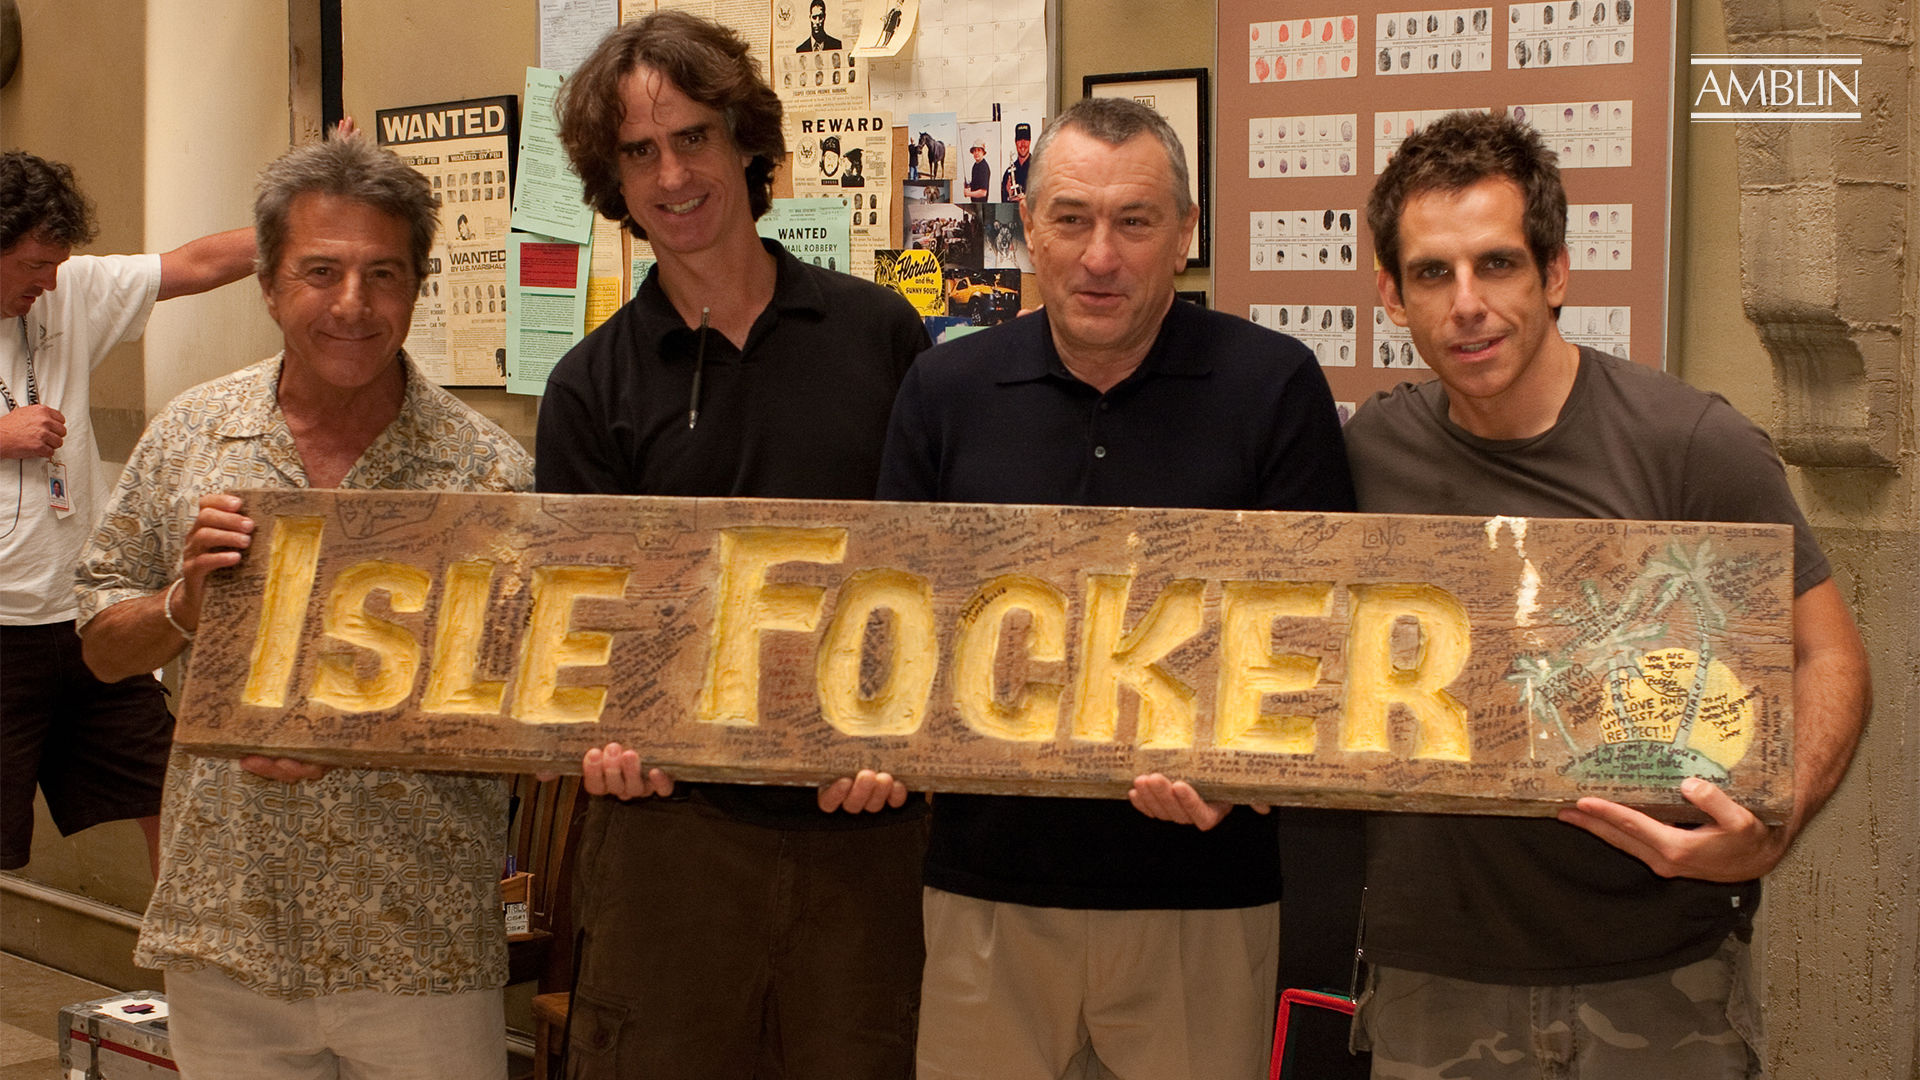 Meet The Fockers 2004 About The Movie Amblin